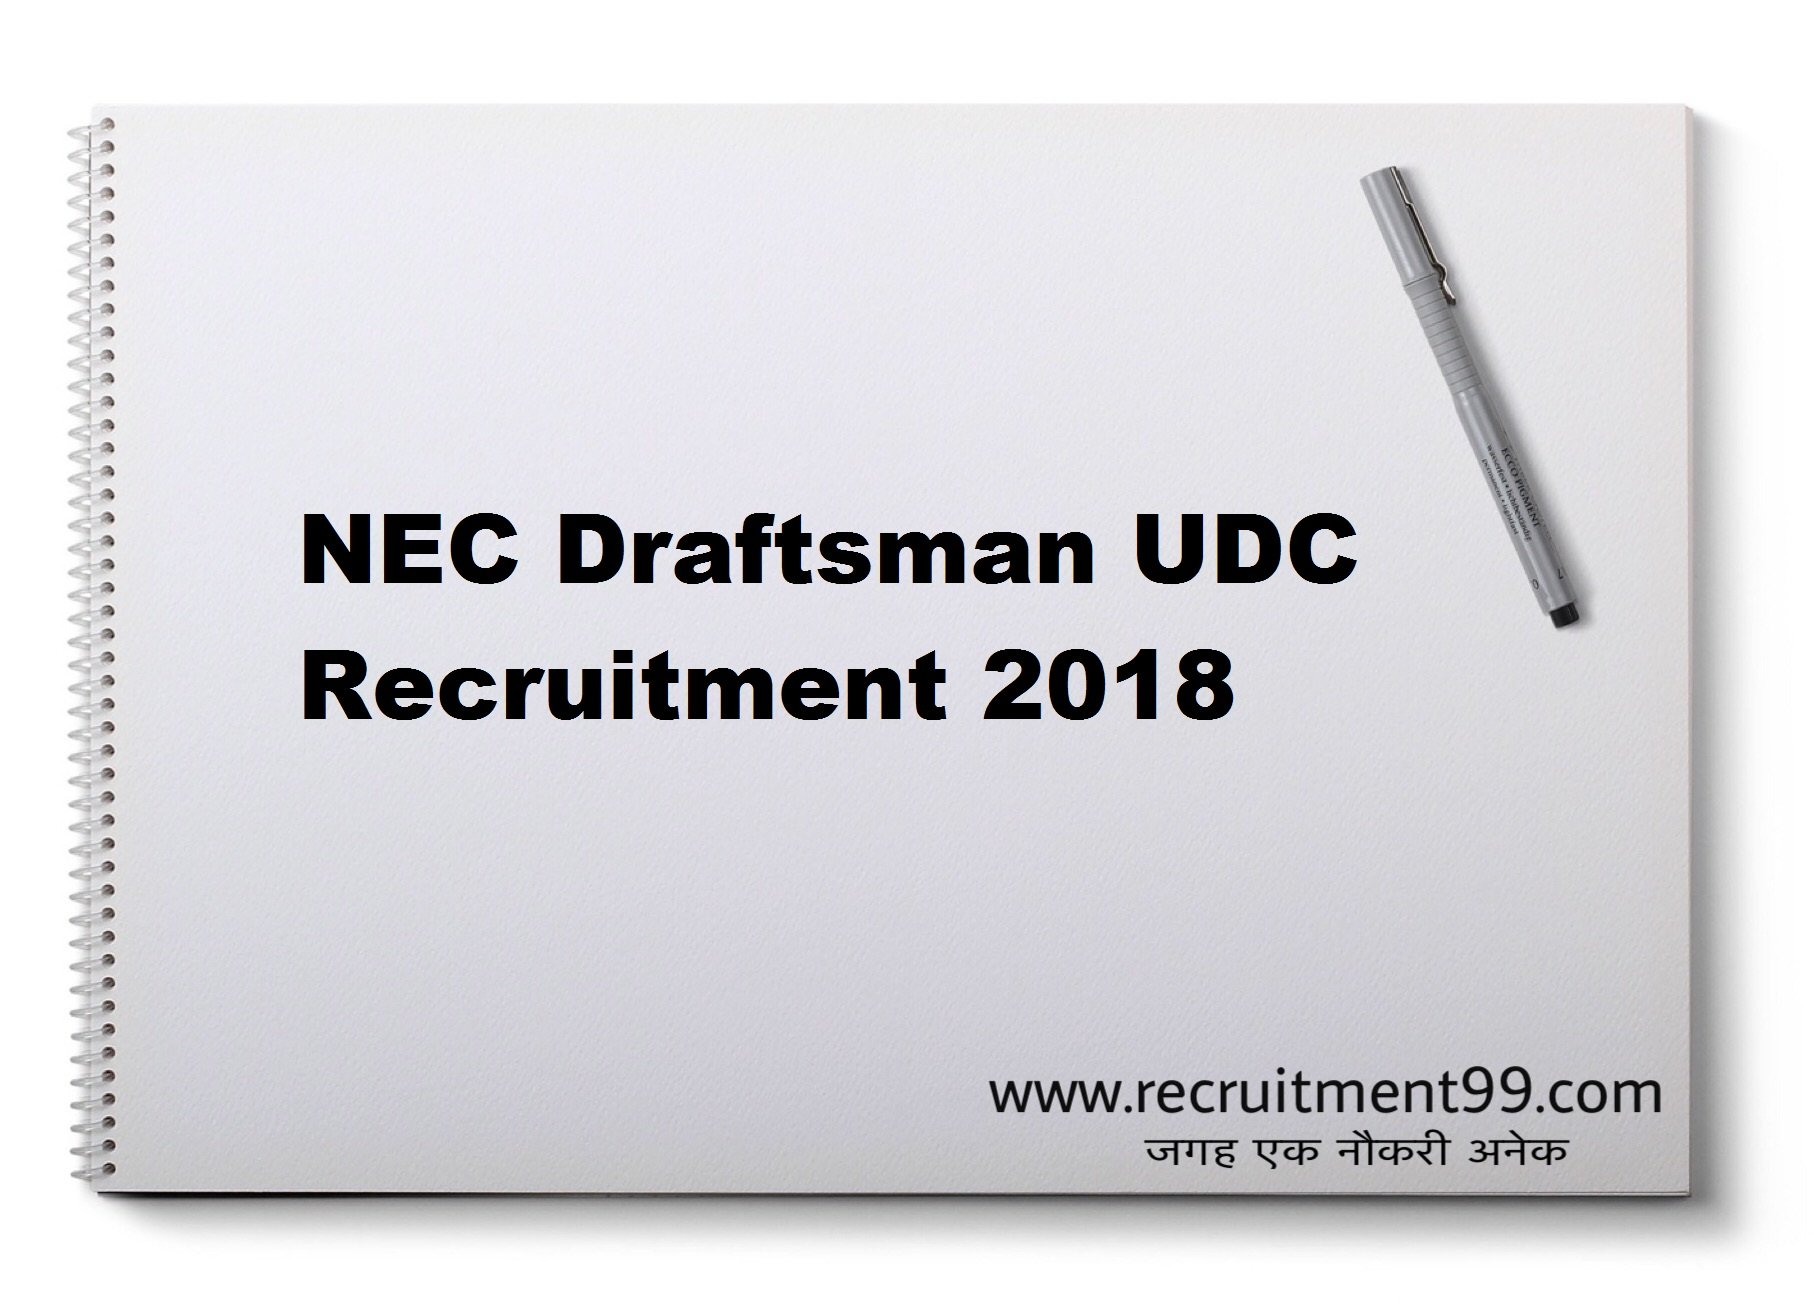 NEC Draftsman UDC Recruitment Admit Card Result 2018